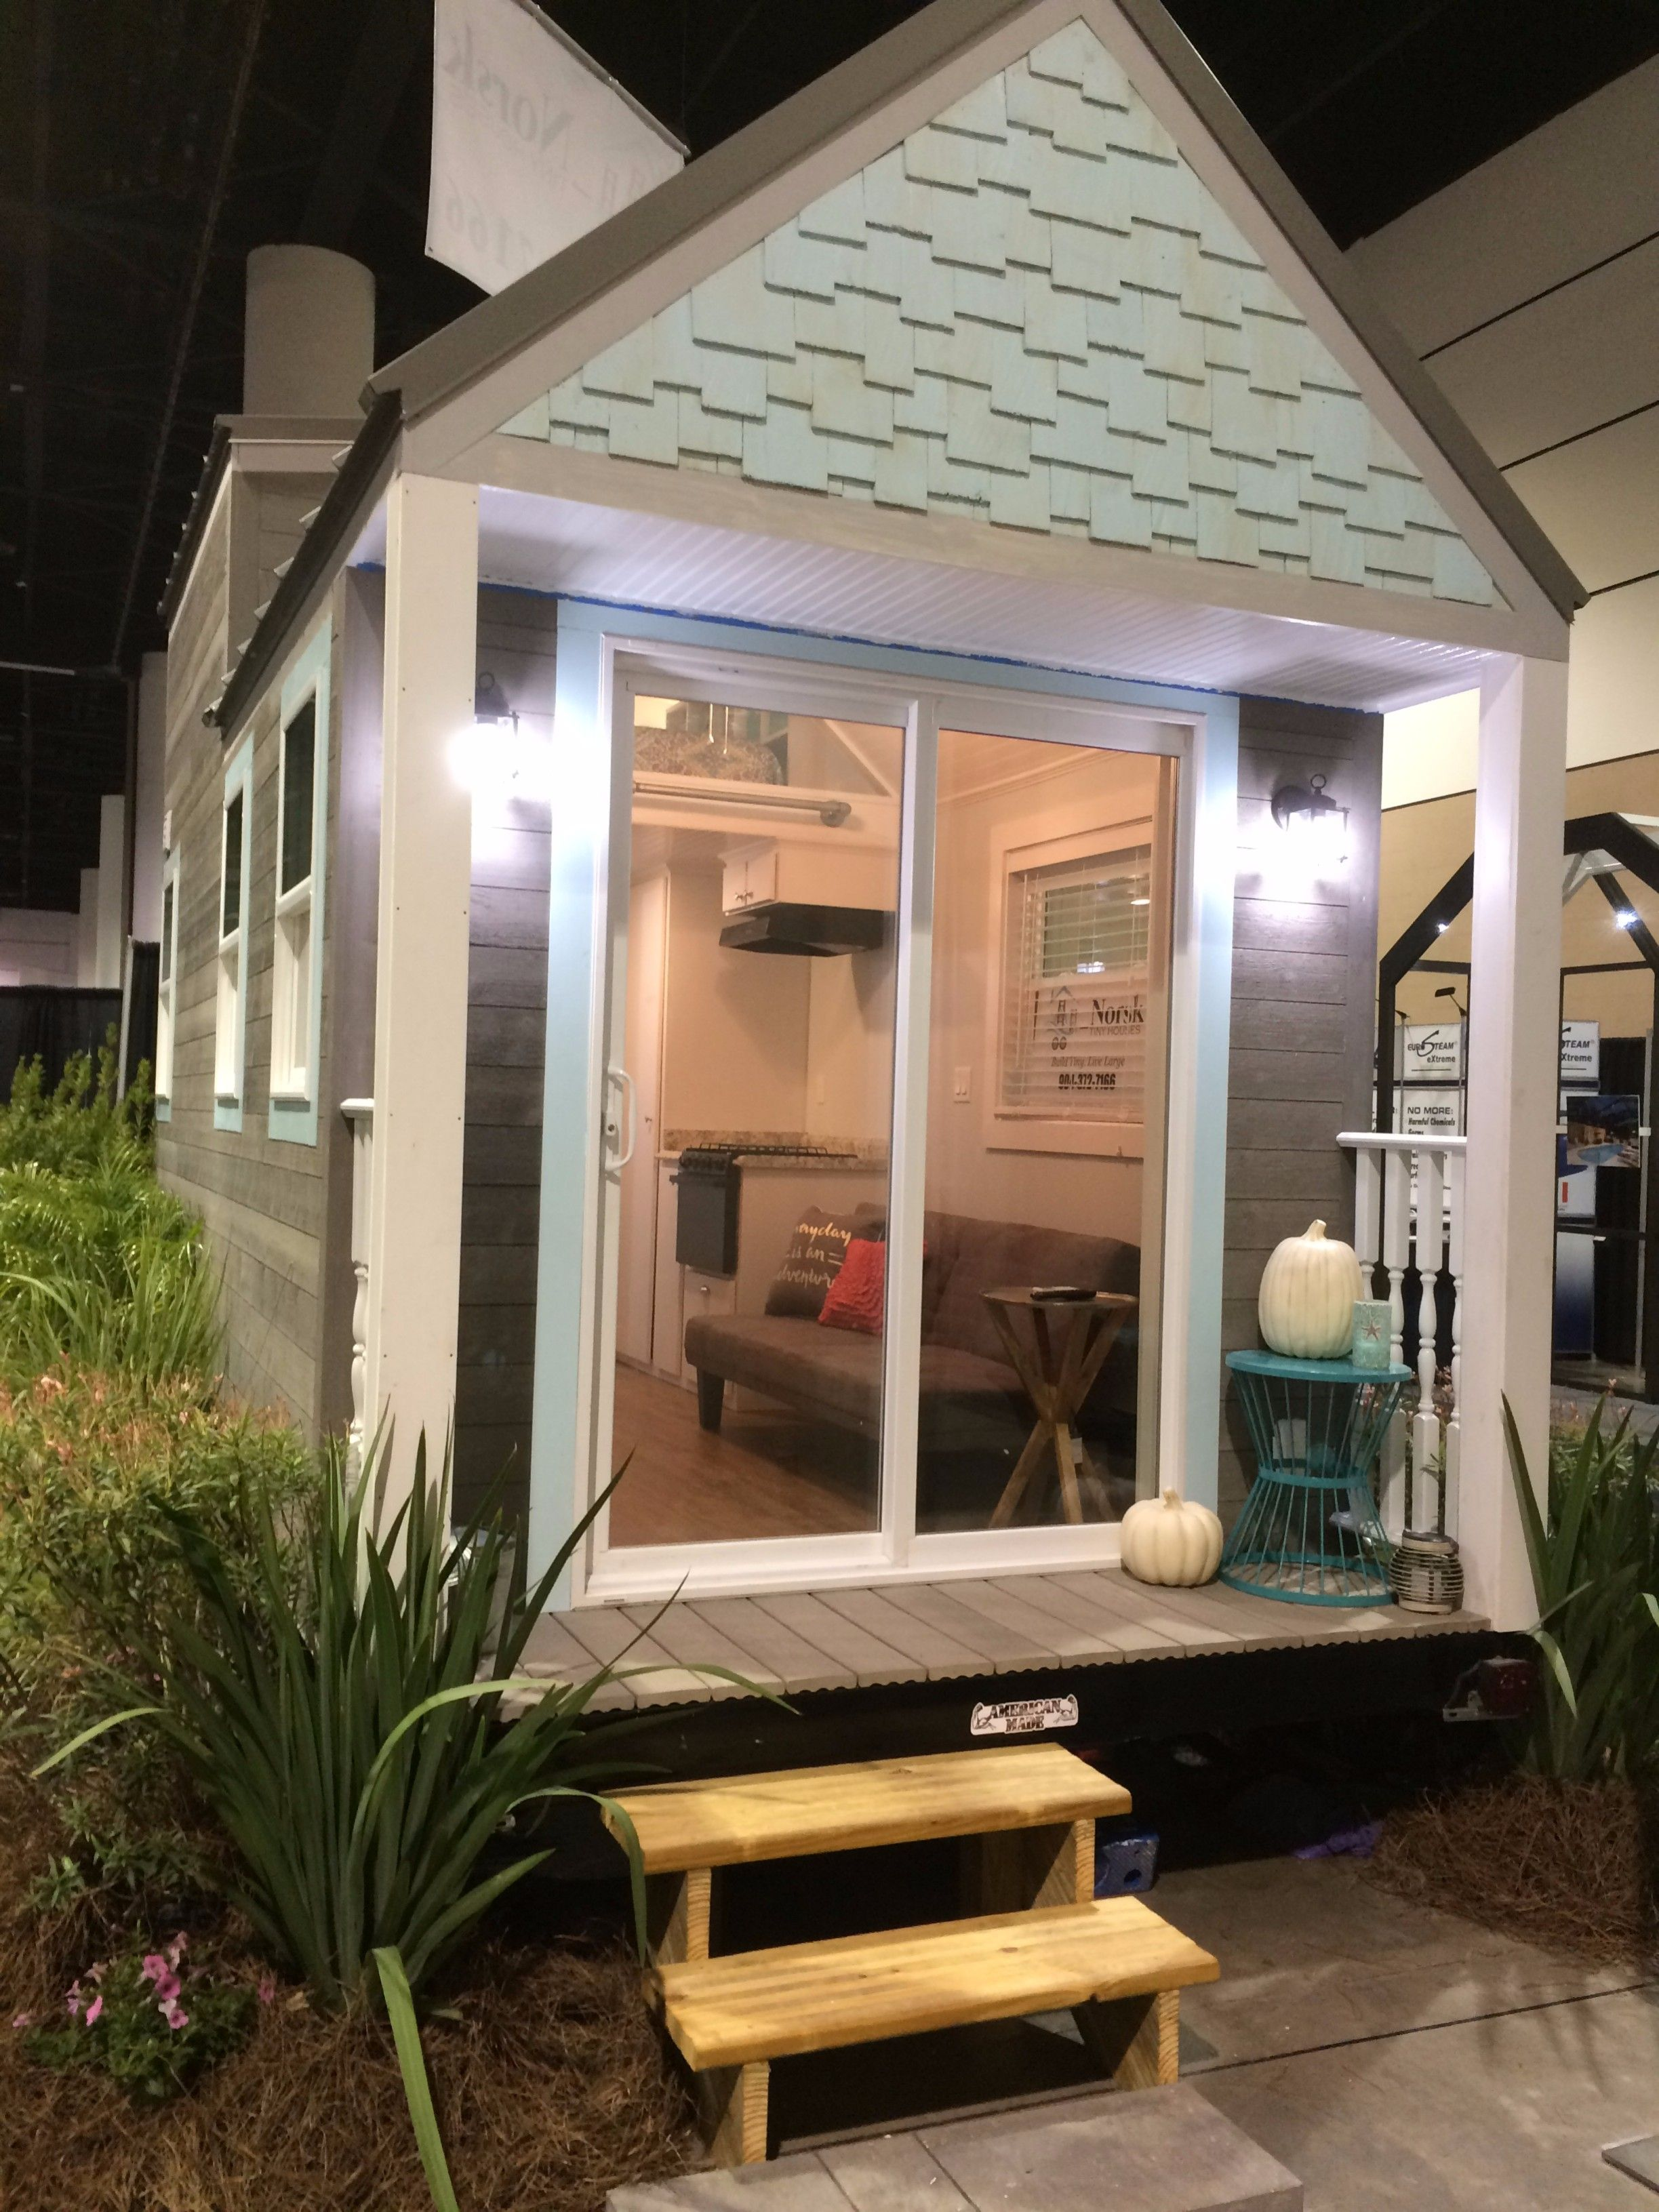 This Is The Beach Cottage Tiny House By Norsk Tiny Houses It S